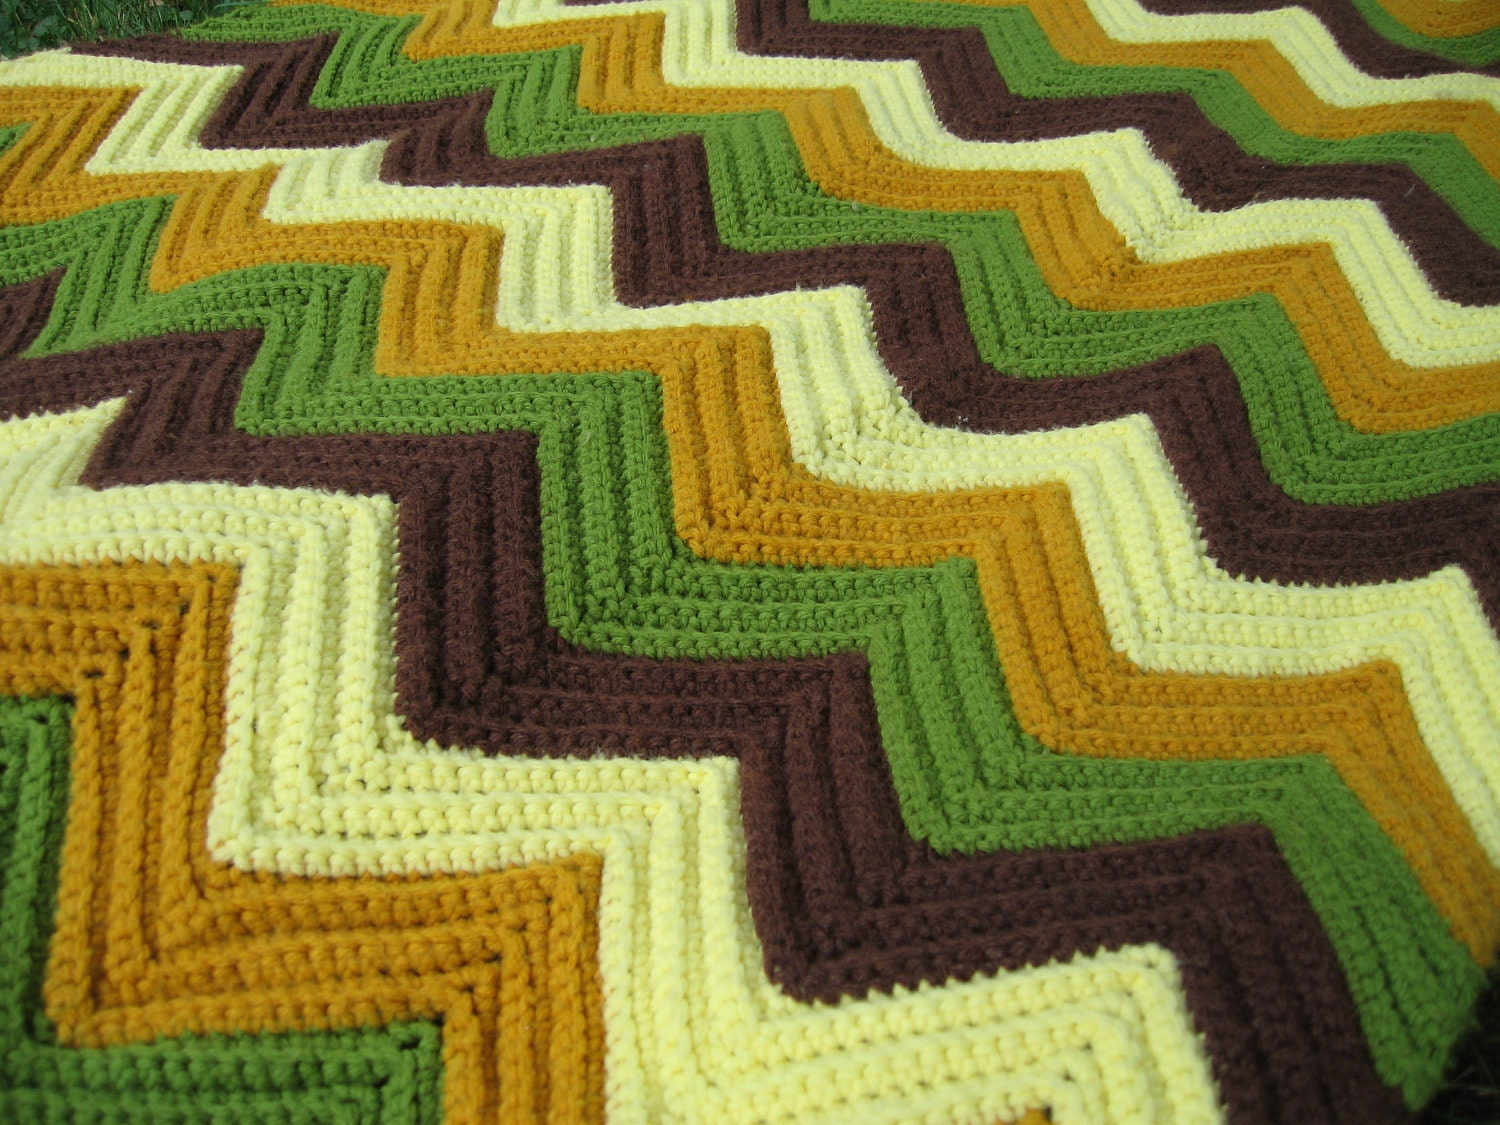 Crochet Afghan Pattern Zig Zag : ZIG ZAG AFGHAN CROCHET PATTERN ? Easy Crochet Patterns